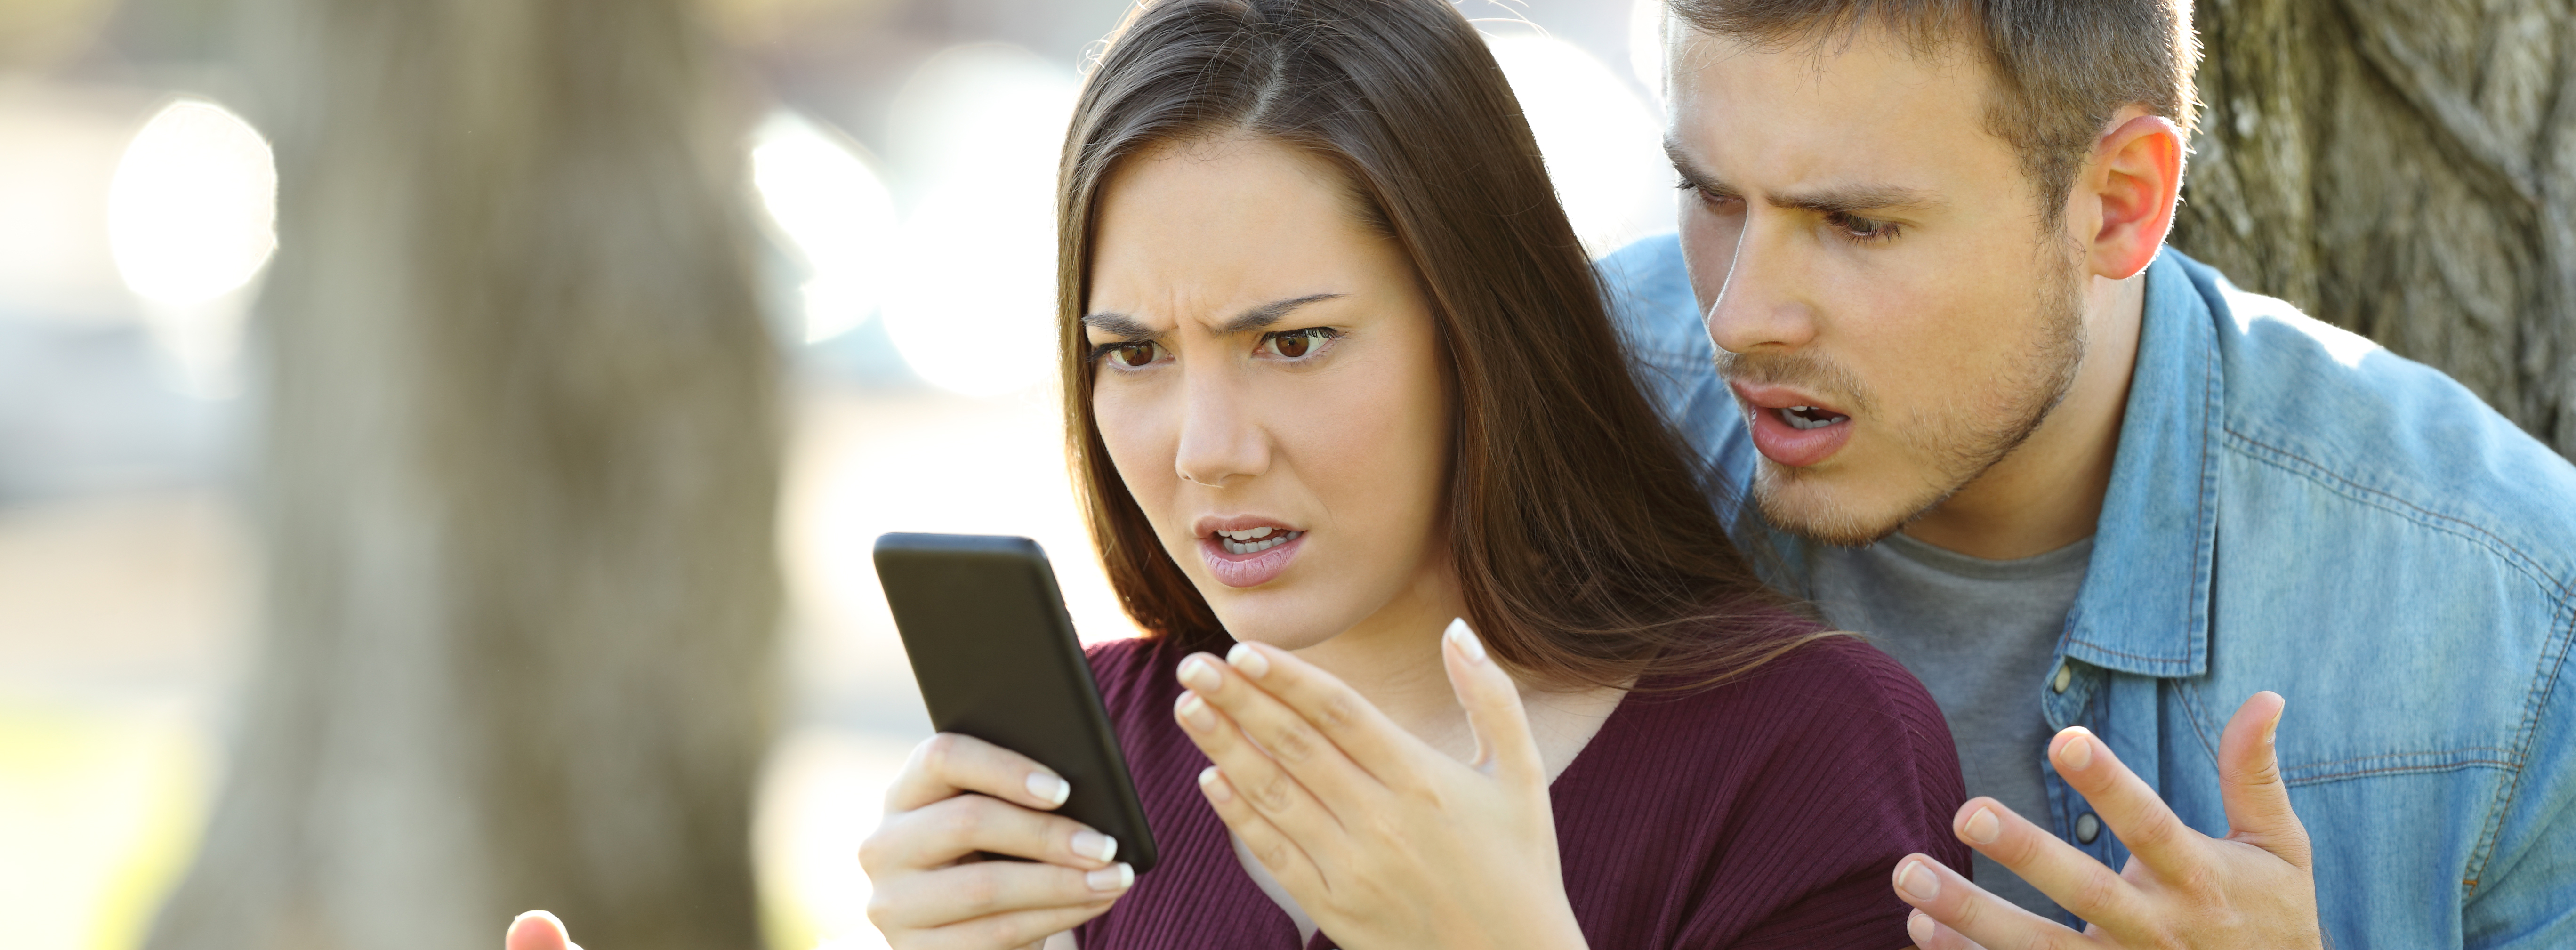 Angry couple using a smart phone outdoors sitting in a park